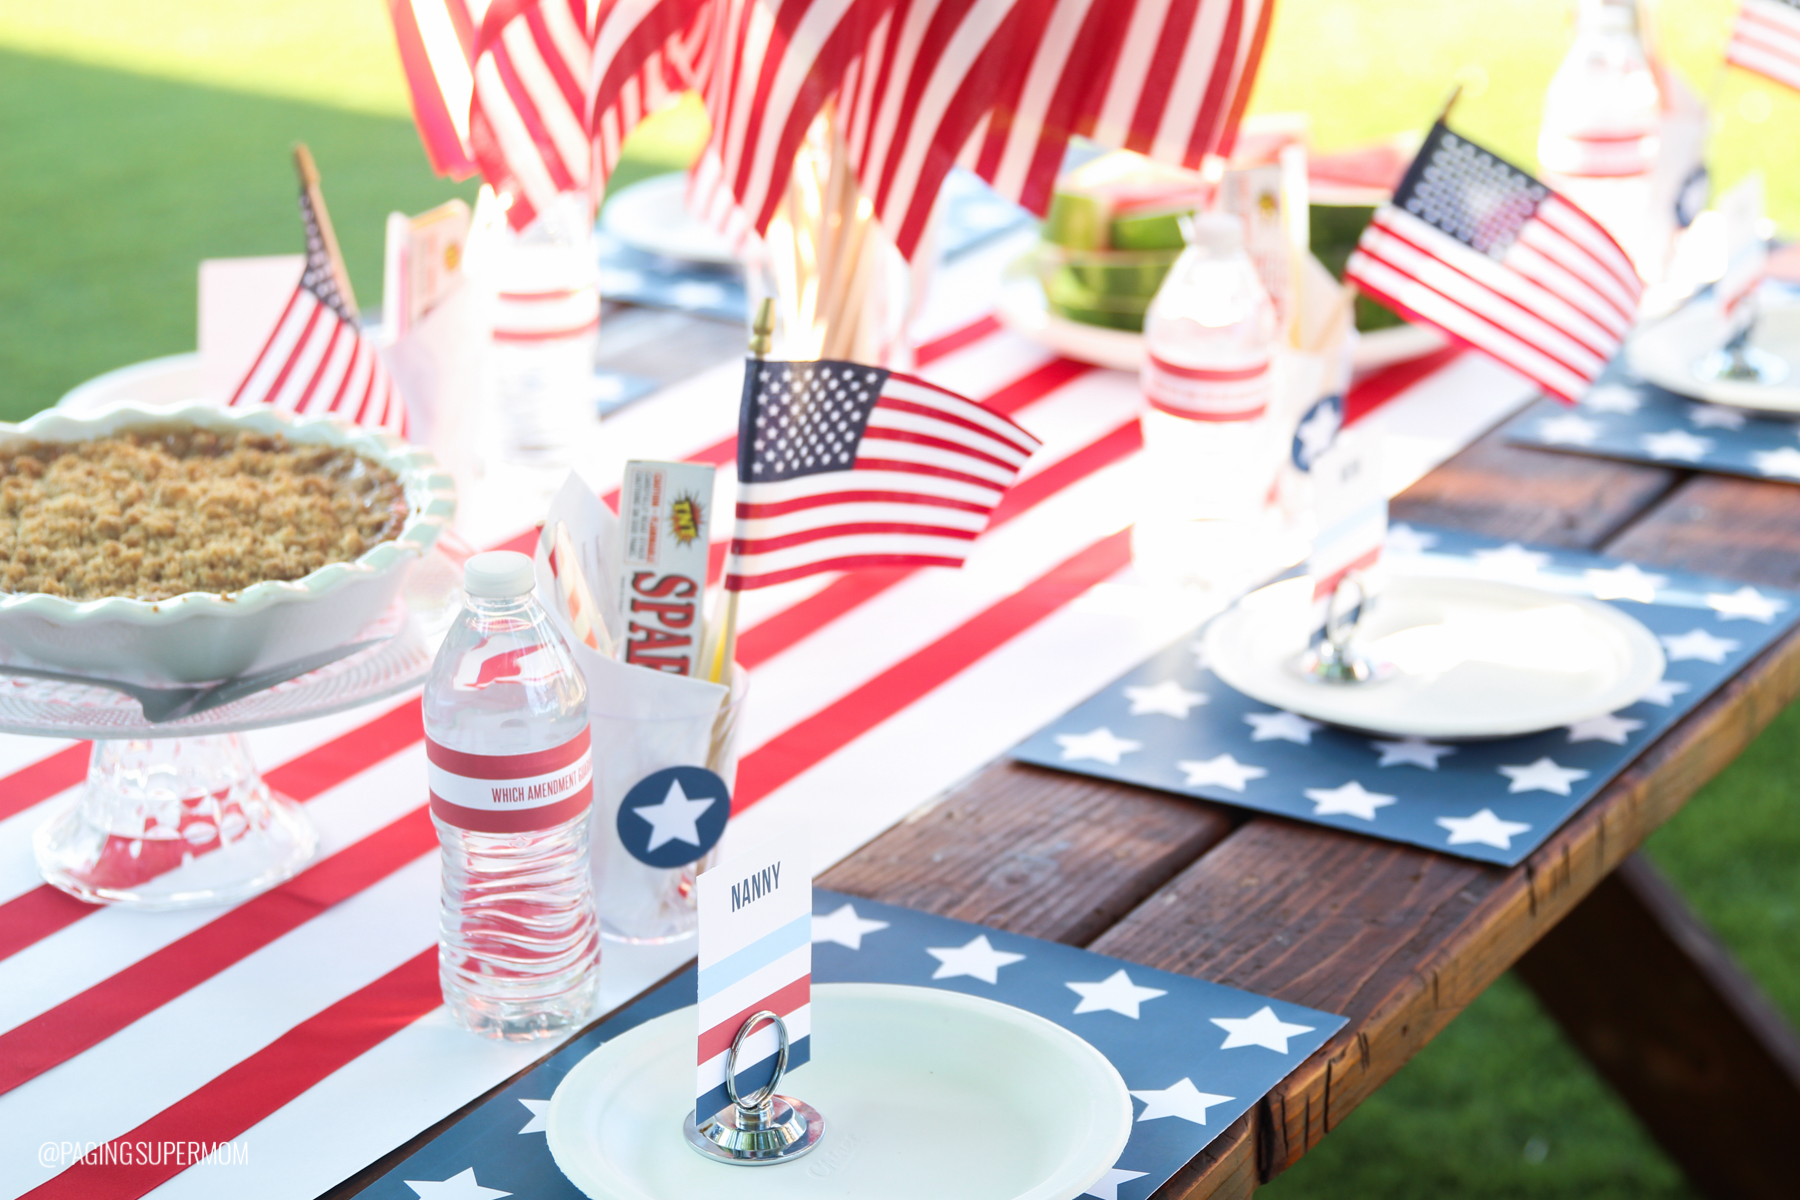 Simple July 4th Decor Ideas and FREE PRINTABLES plus how to host a low-stress Summer barbecue via @PagingSupermom